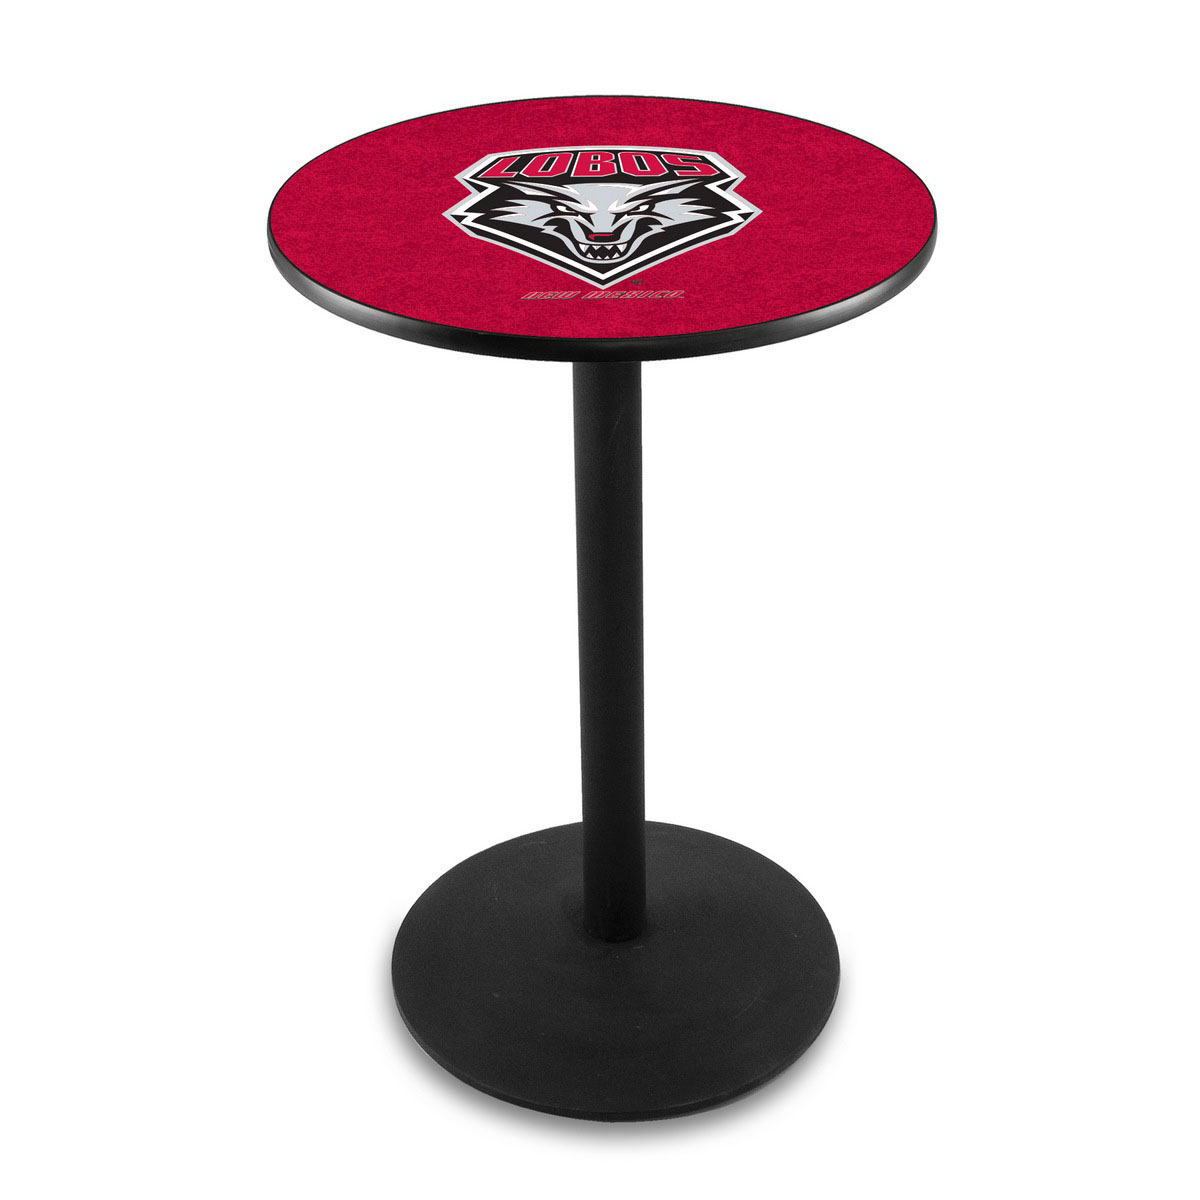 Check out the University Mexico Logo Pub Bar Table Round Stand Product Photo